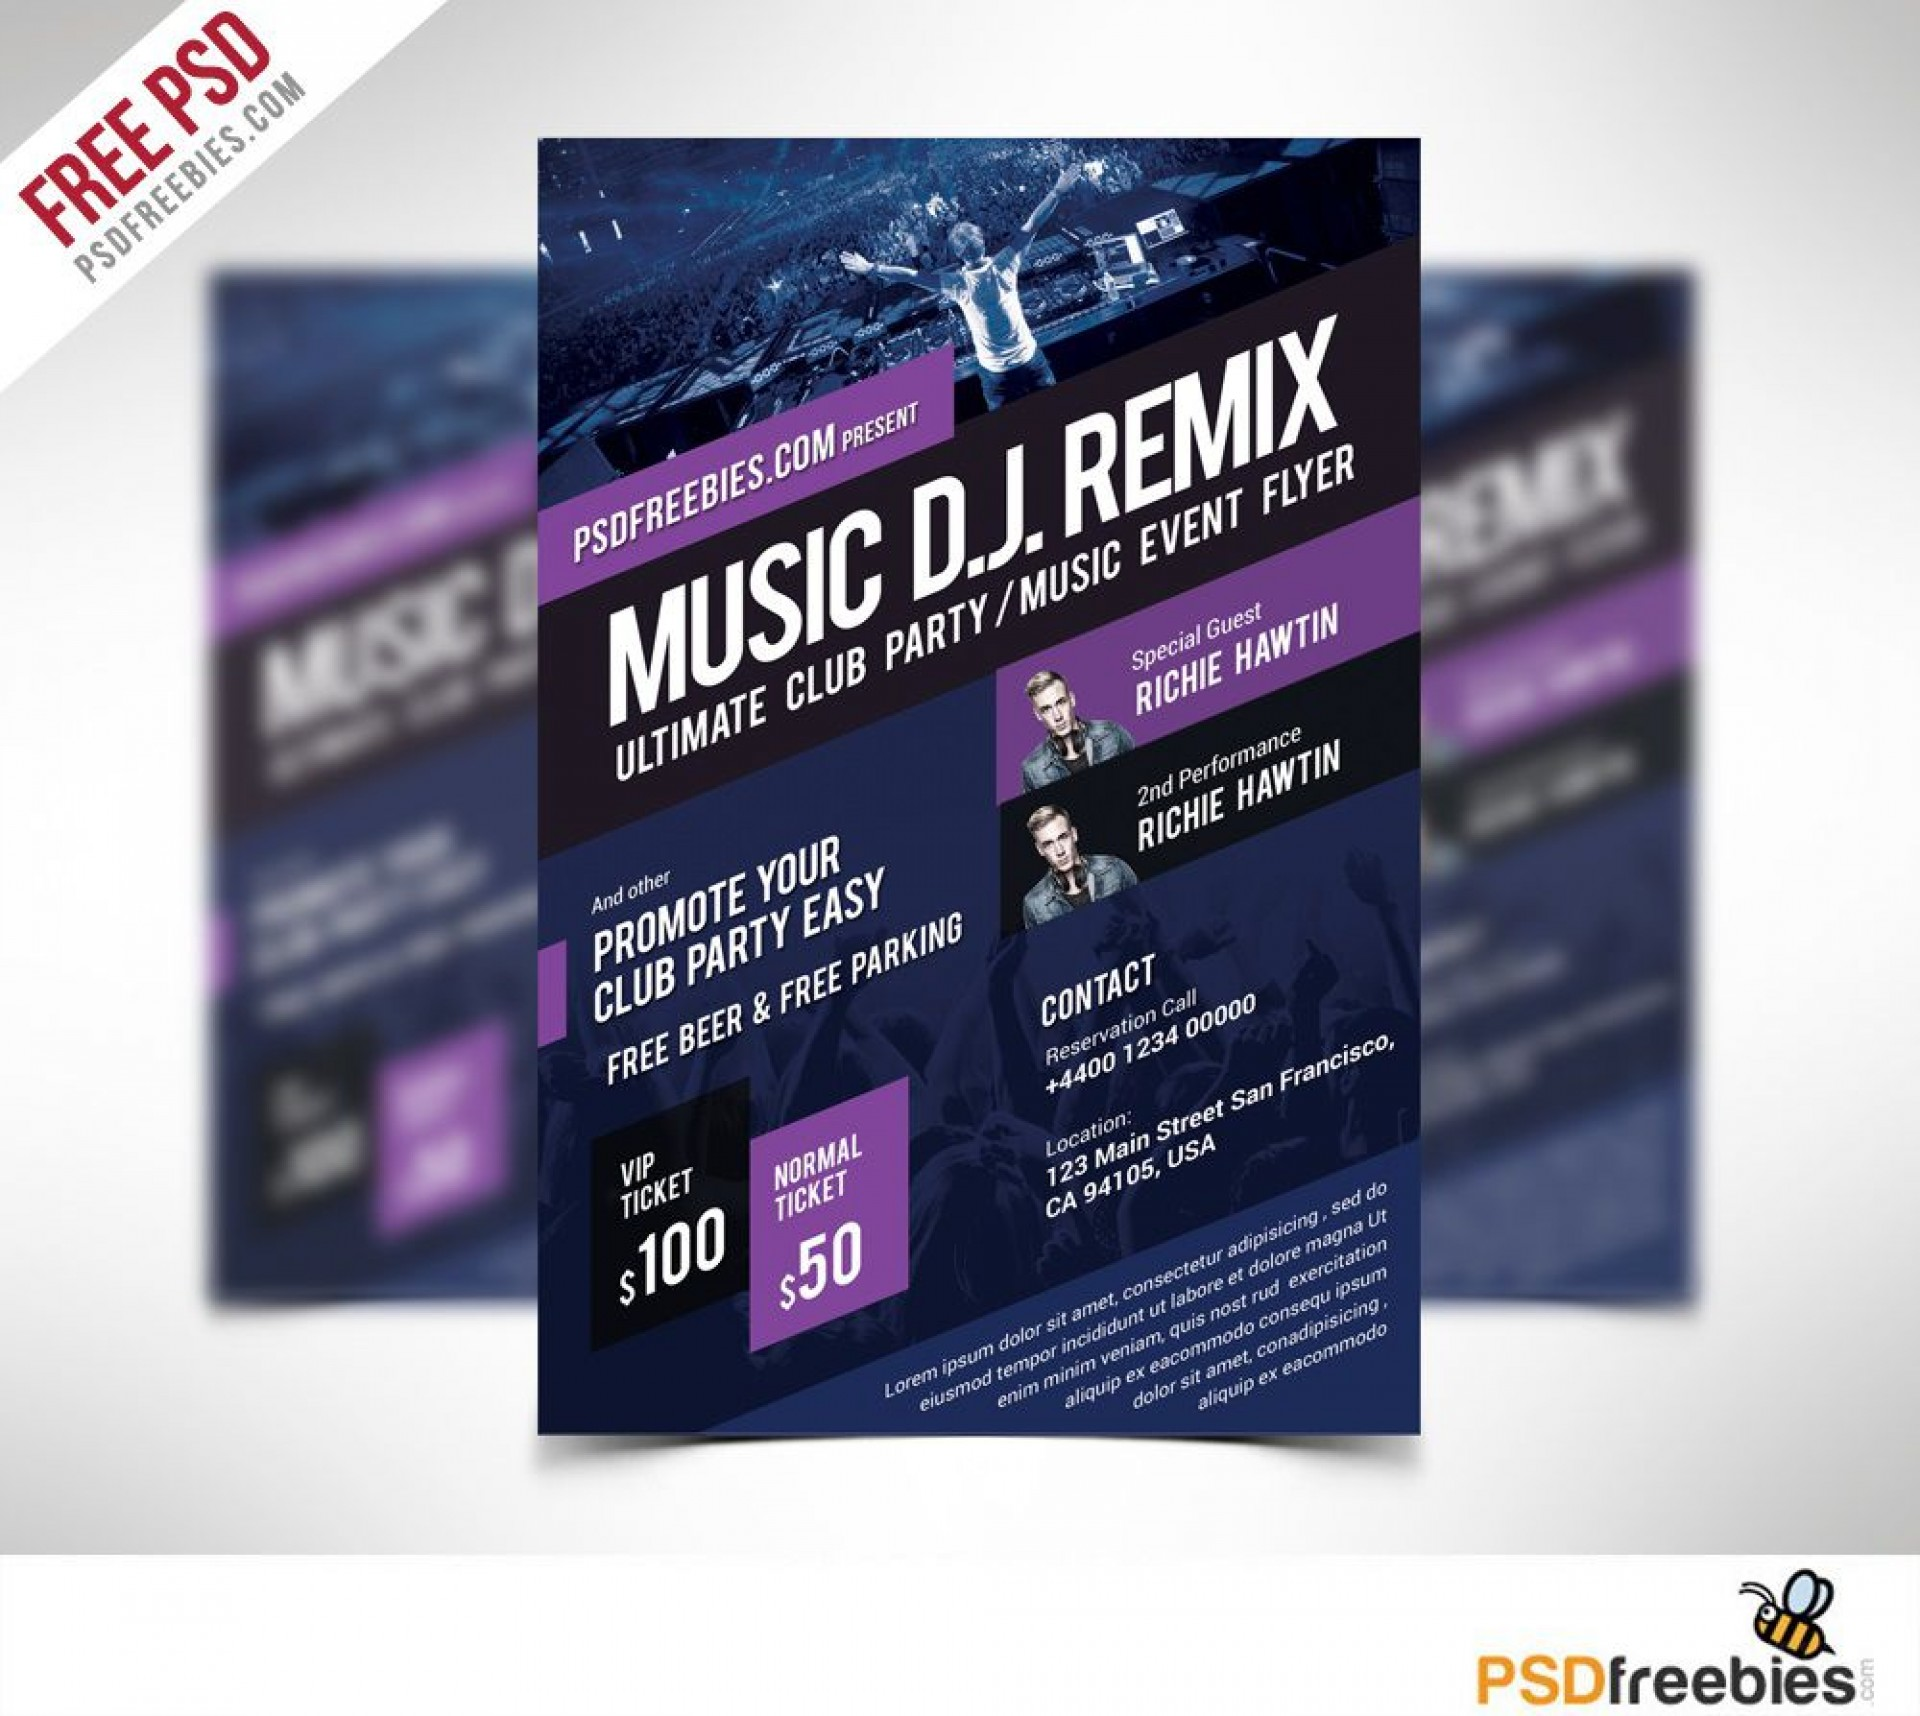 004 Unique Event Flyer Template Free Photo  Word Download Psd1920